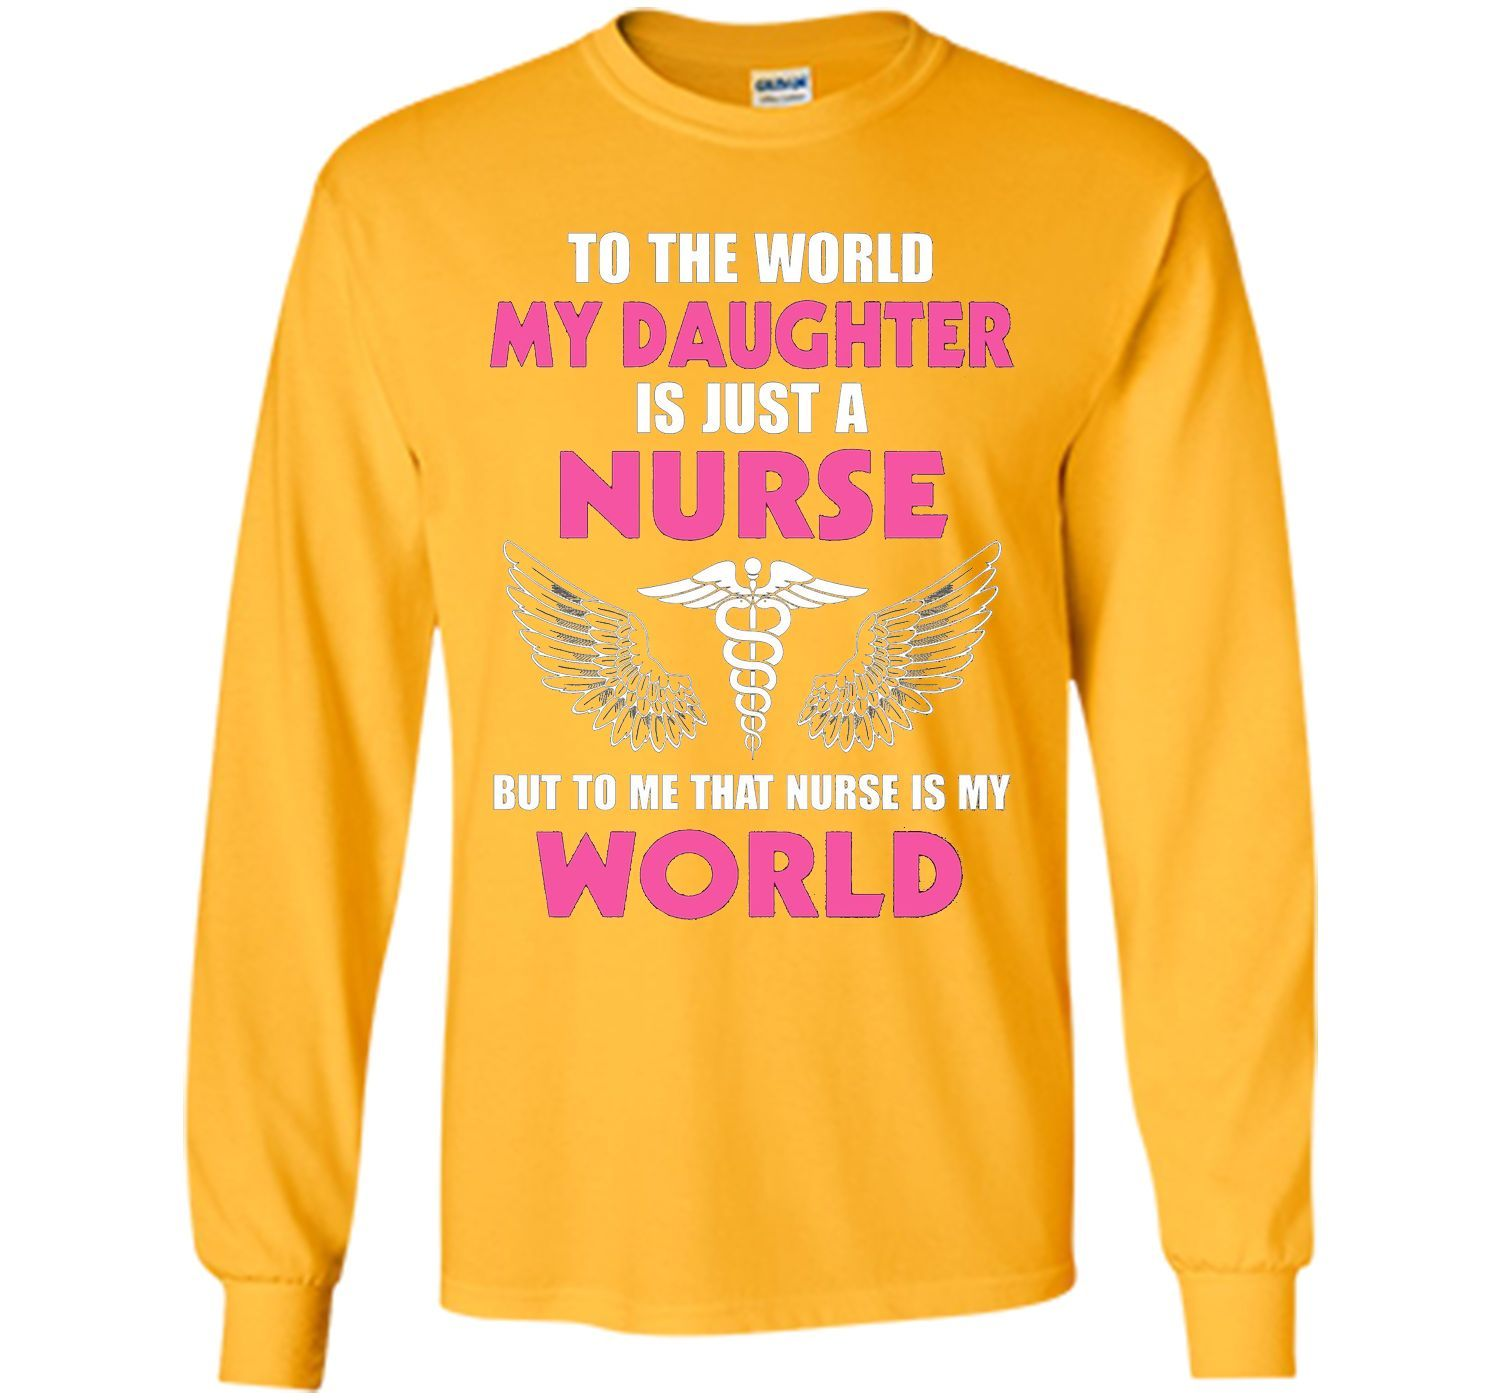 My Daughter is A Nurse - RN LPN Shirt for Father's day 2017